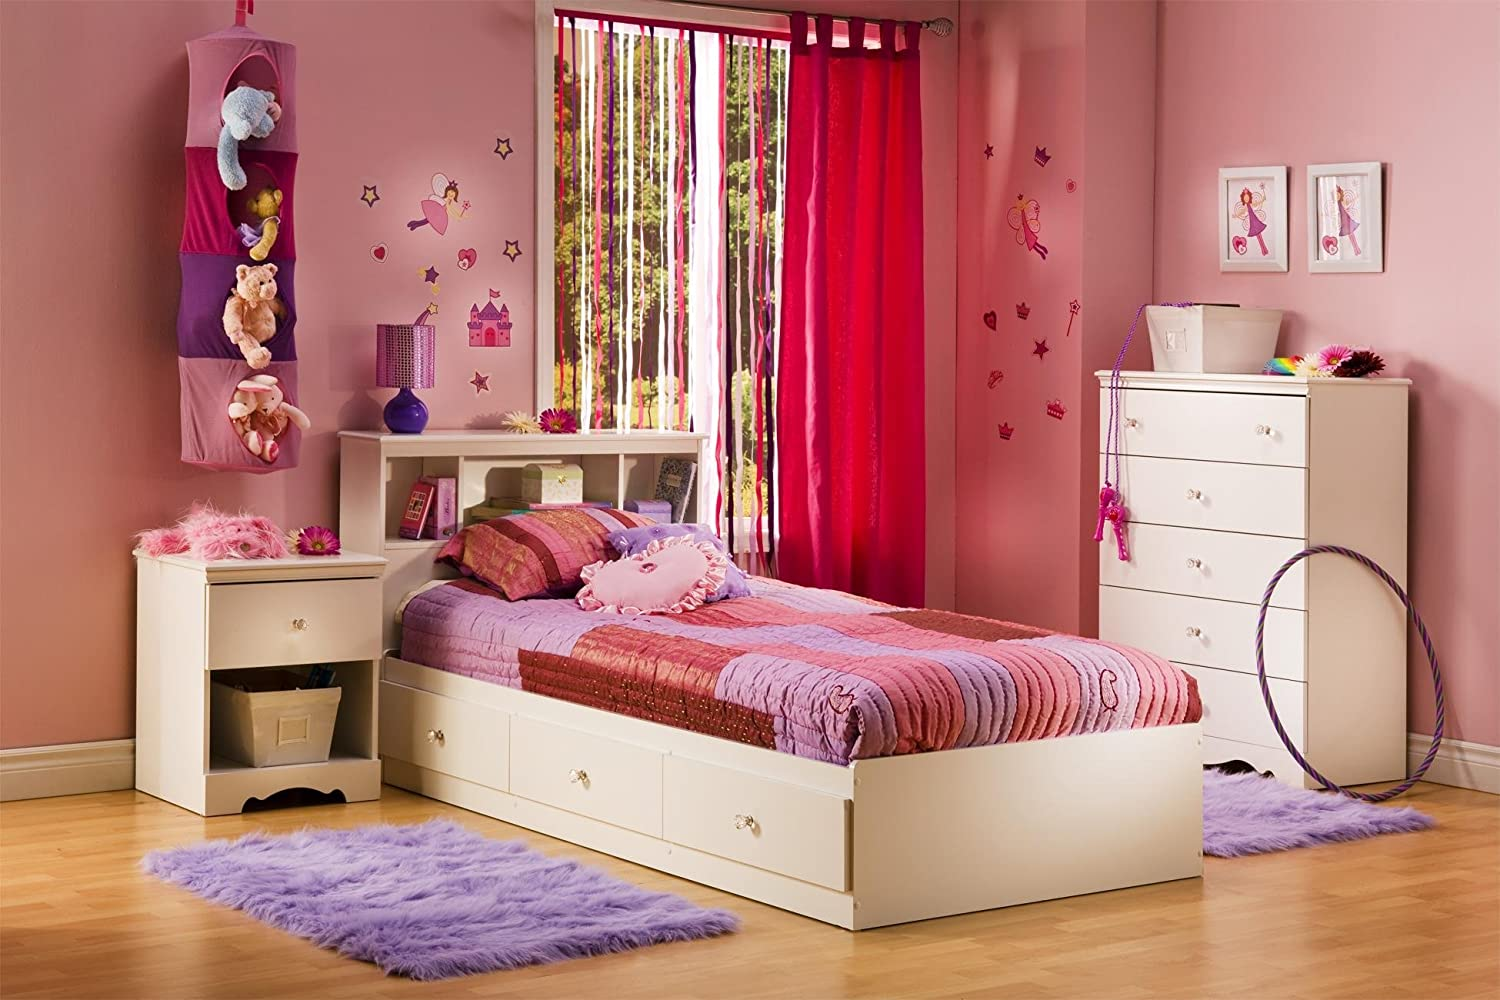 girls bedroom sets furniture. Amazon com  South Shore Crystal Kids Wood Mates Storage Bed 4 Piece Bedroom Set in Pure White Furniture Sets